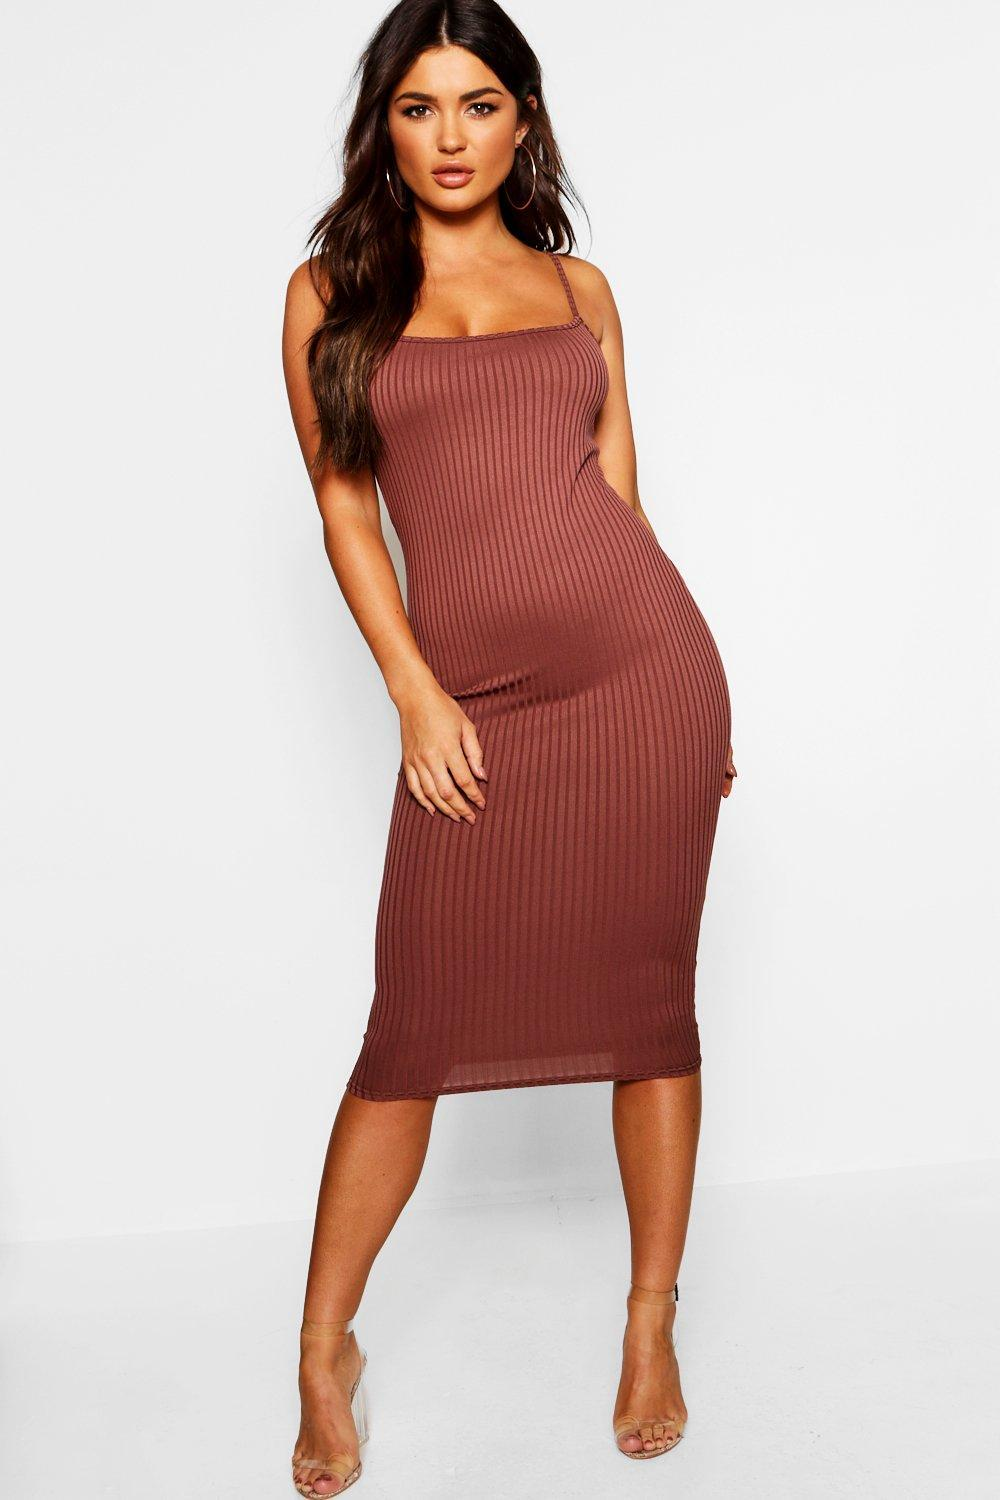 7e2095e480e4c Lyst - Boohoo Strappy Jumbo Rib Midi Dress in Brown